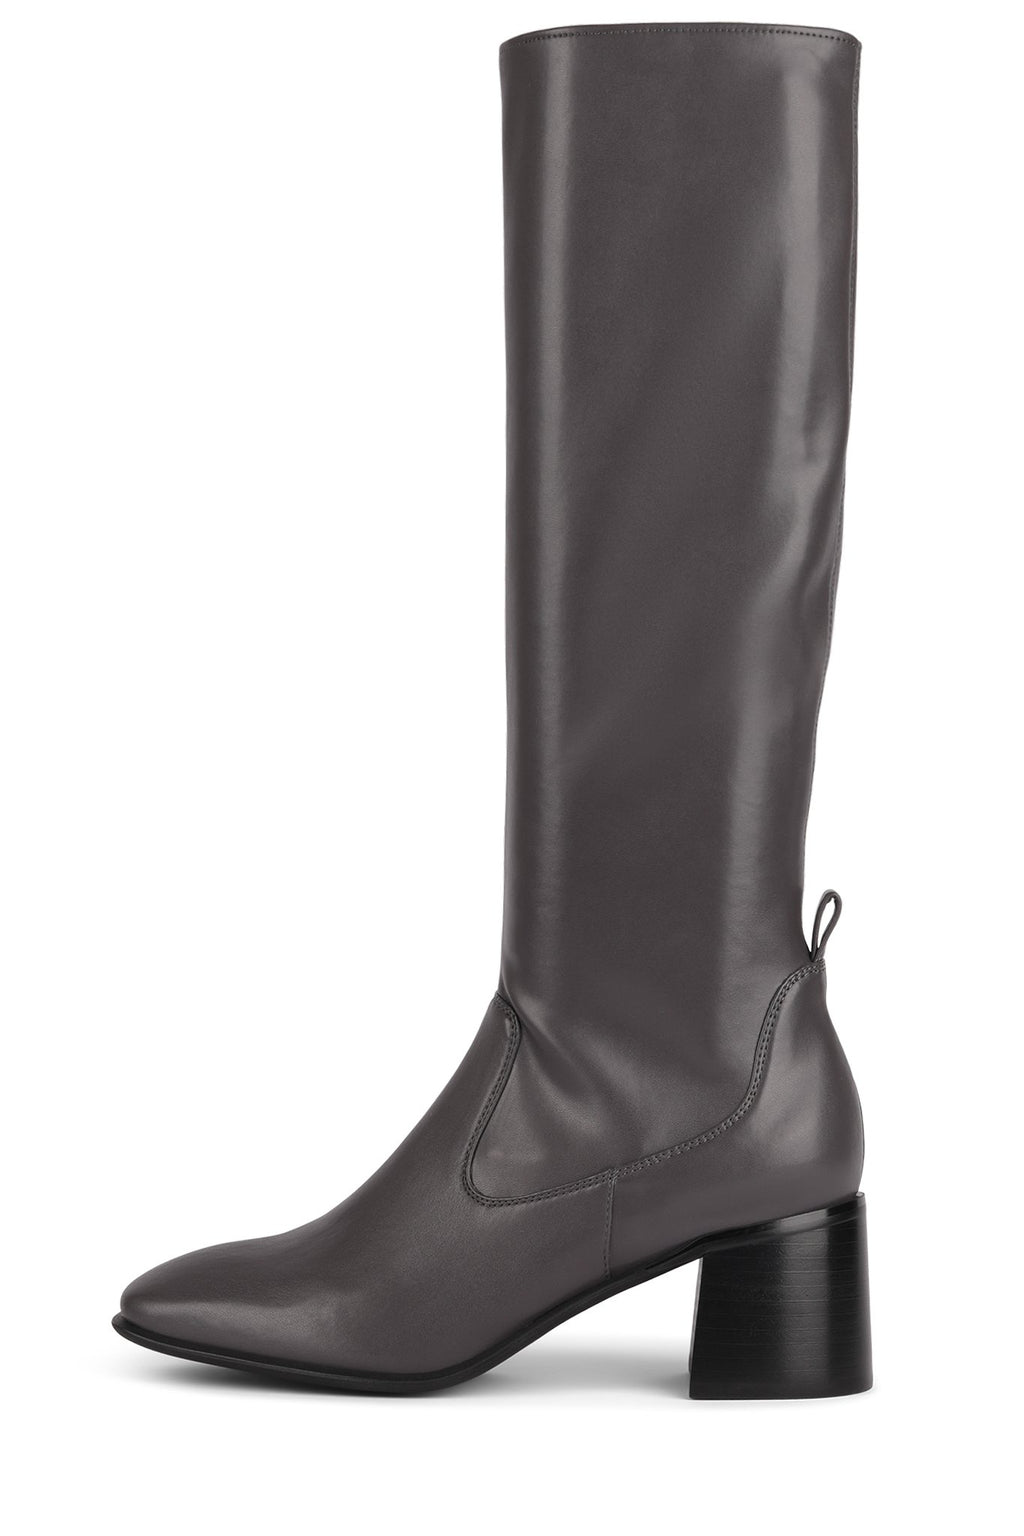 JEREM-KH Knee-High Boot YYH Grey 6